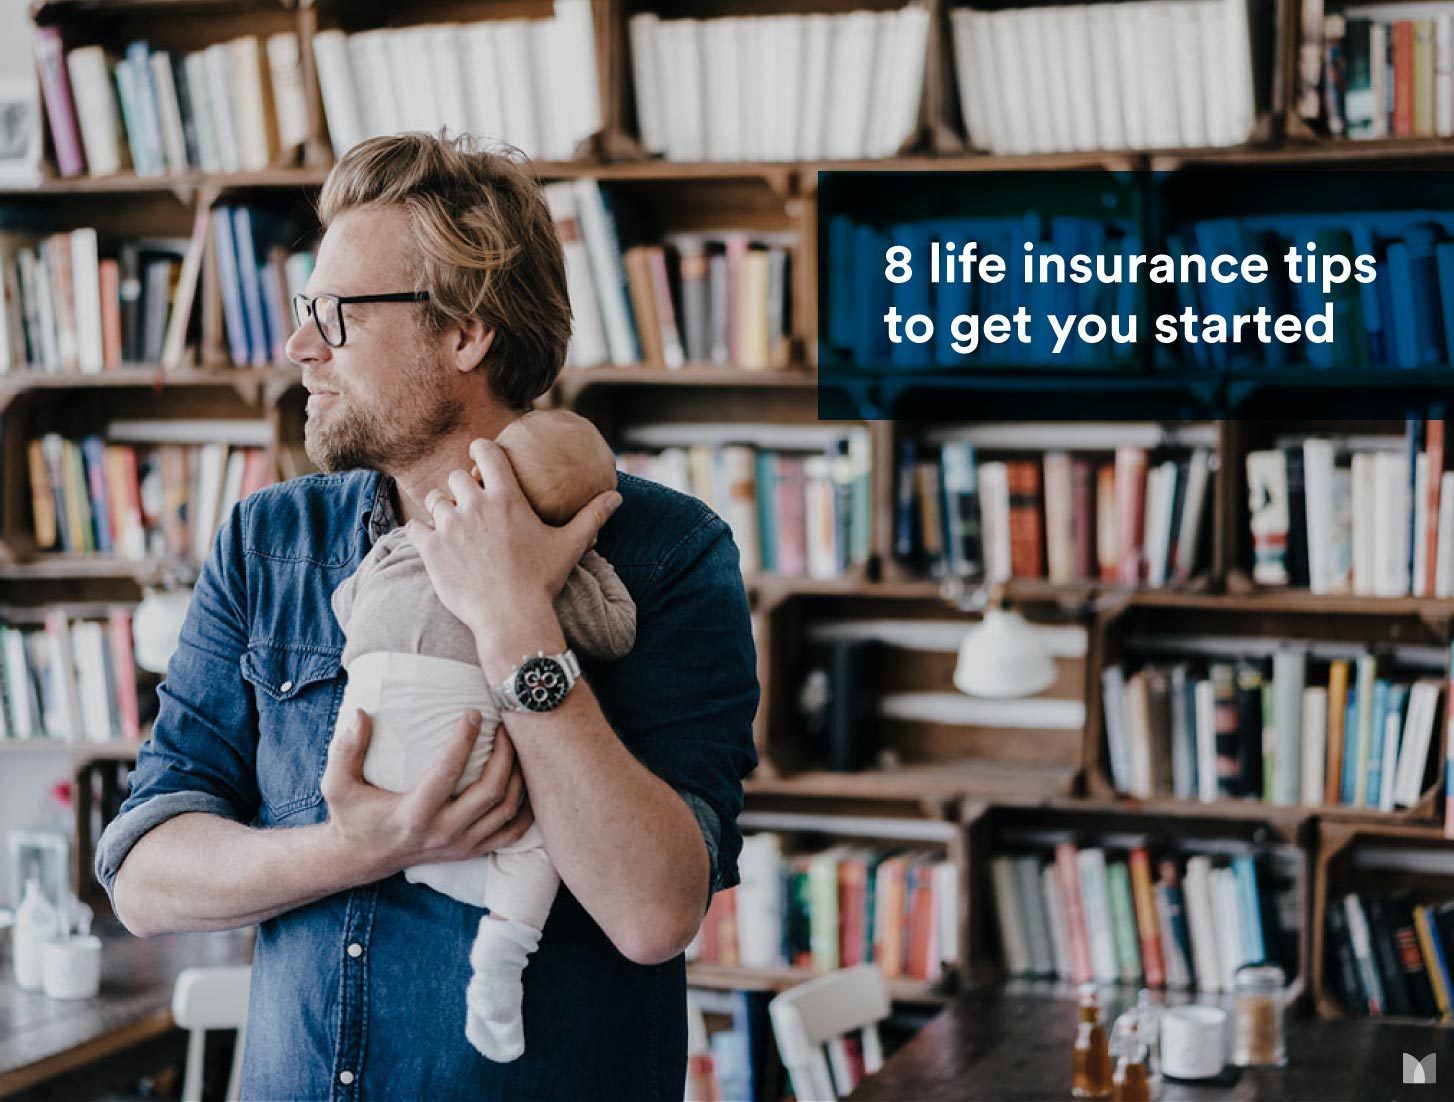 8 life insurance tips to get you started